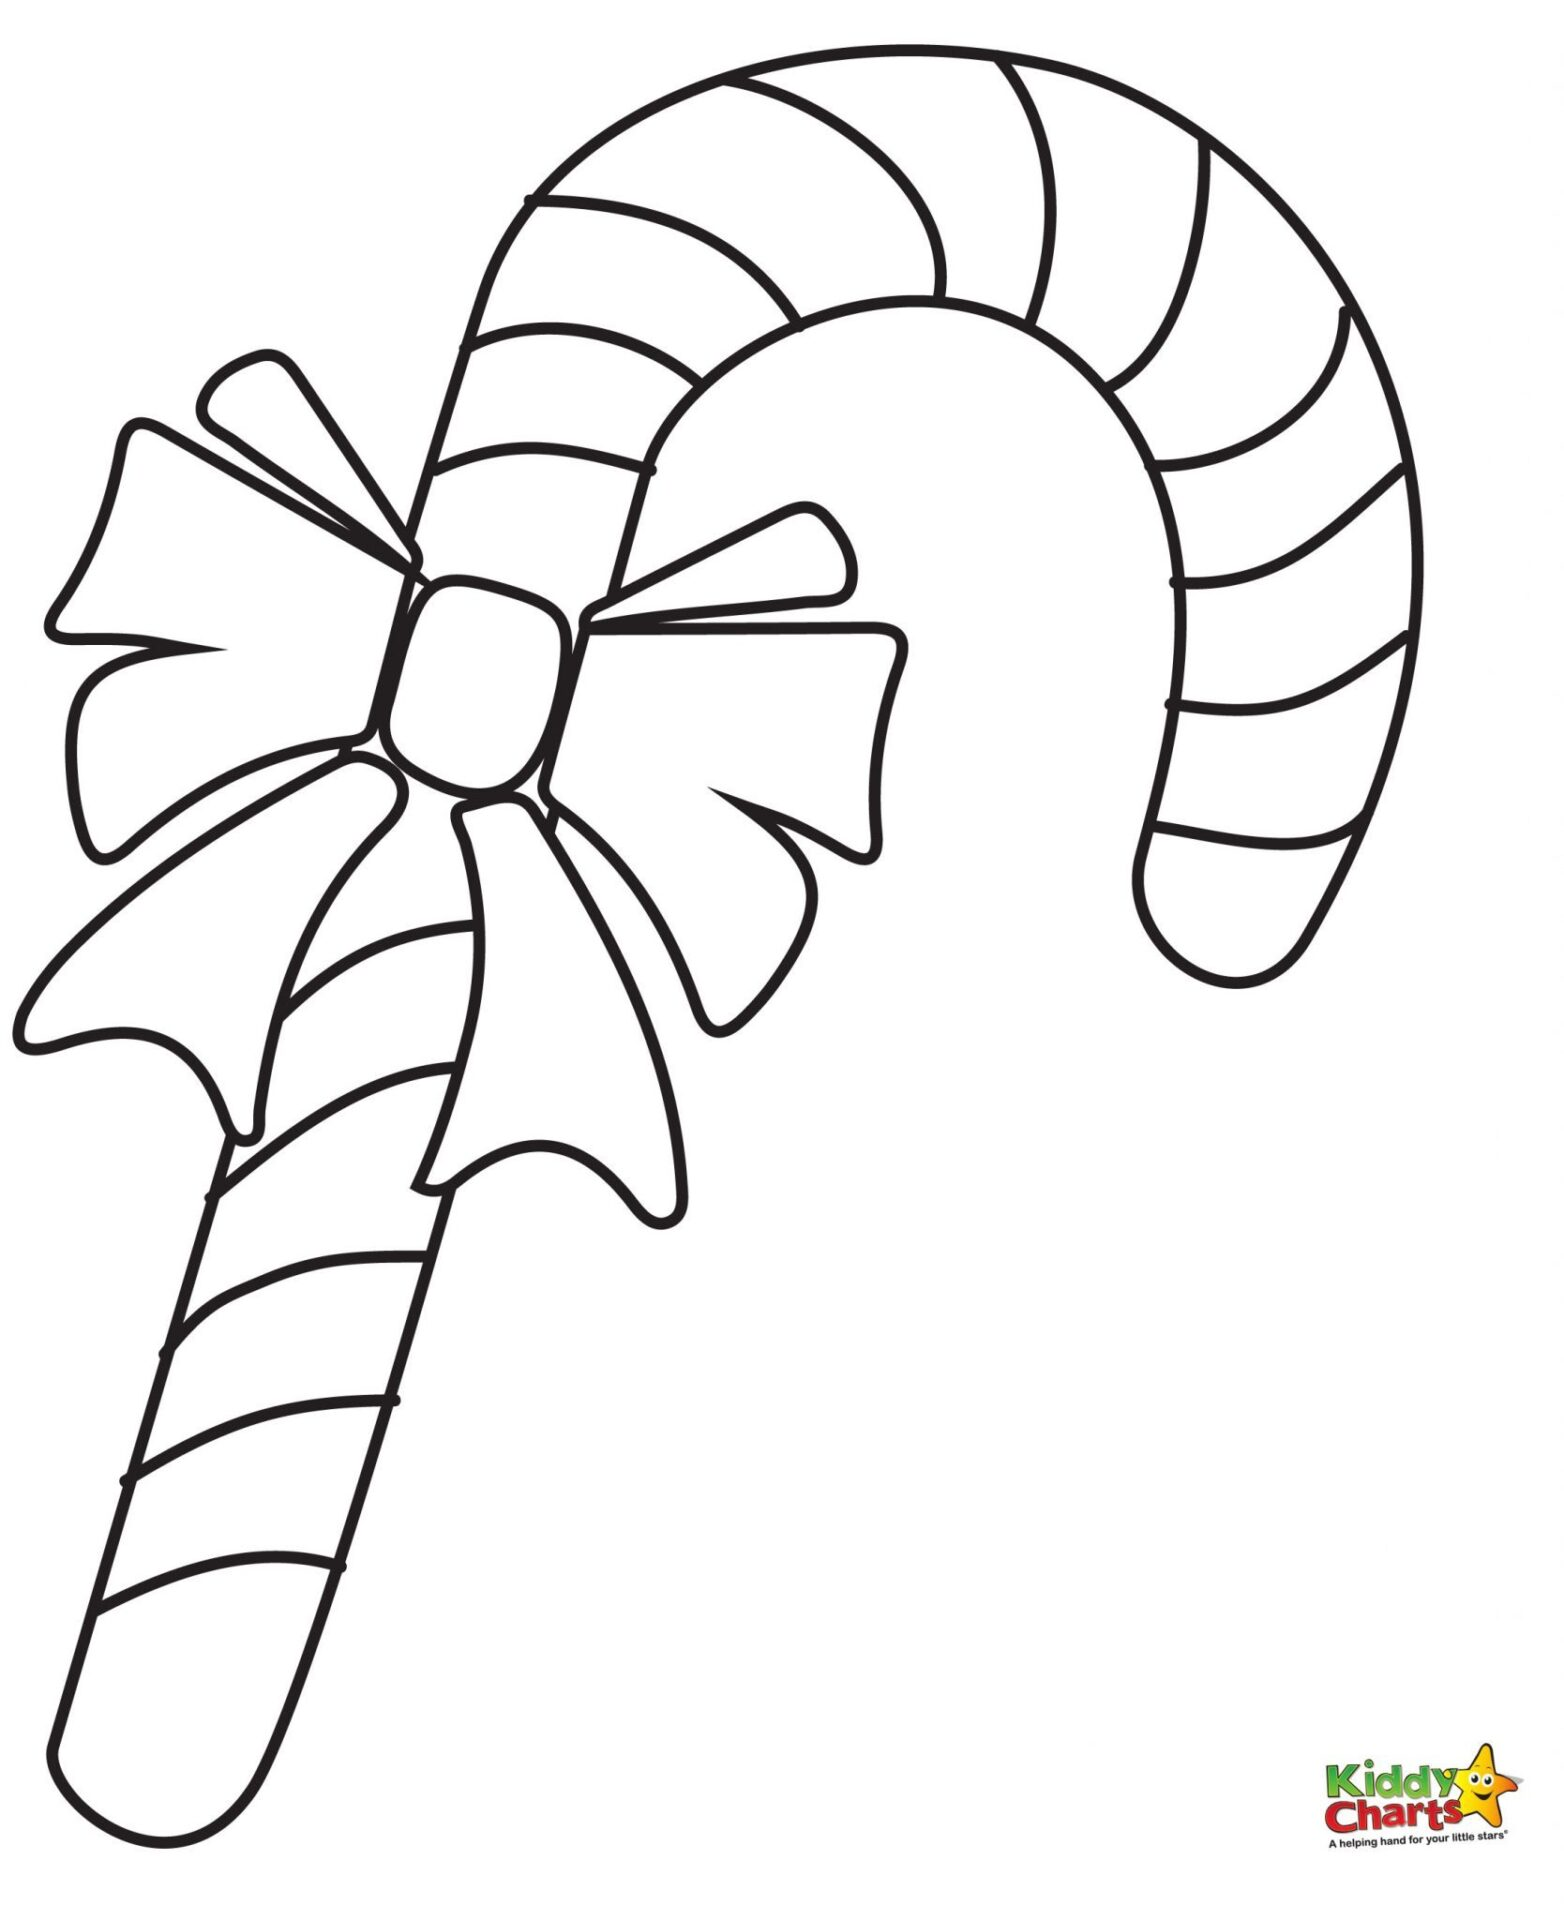 large candy cane coloring pages - photo#9